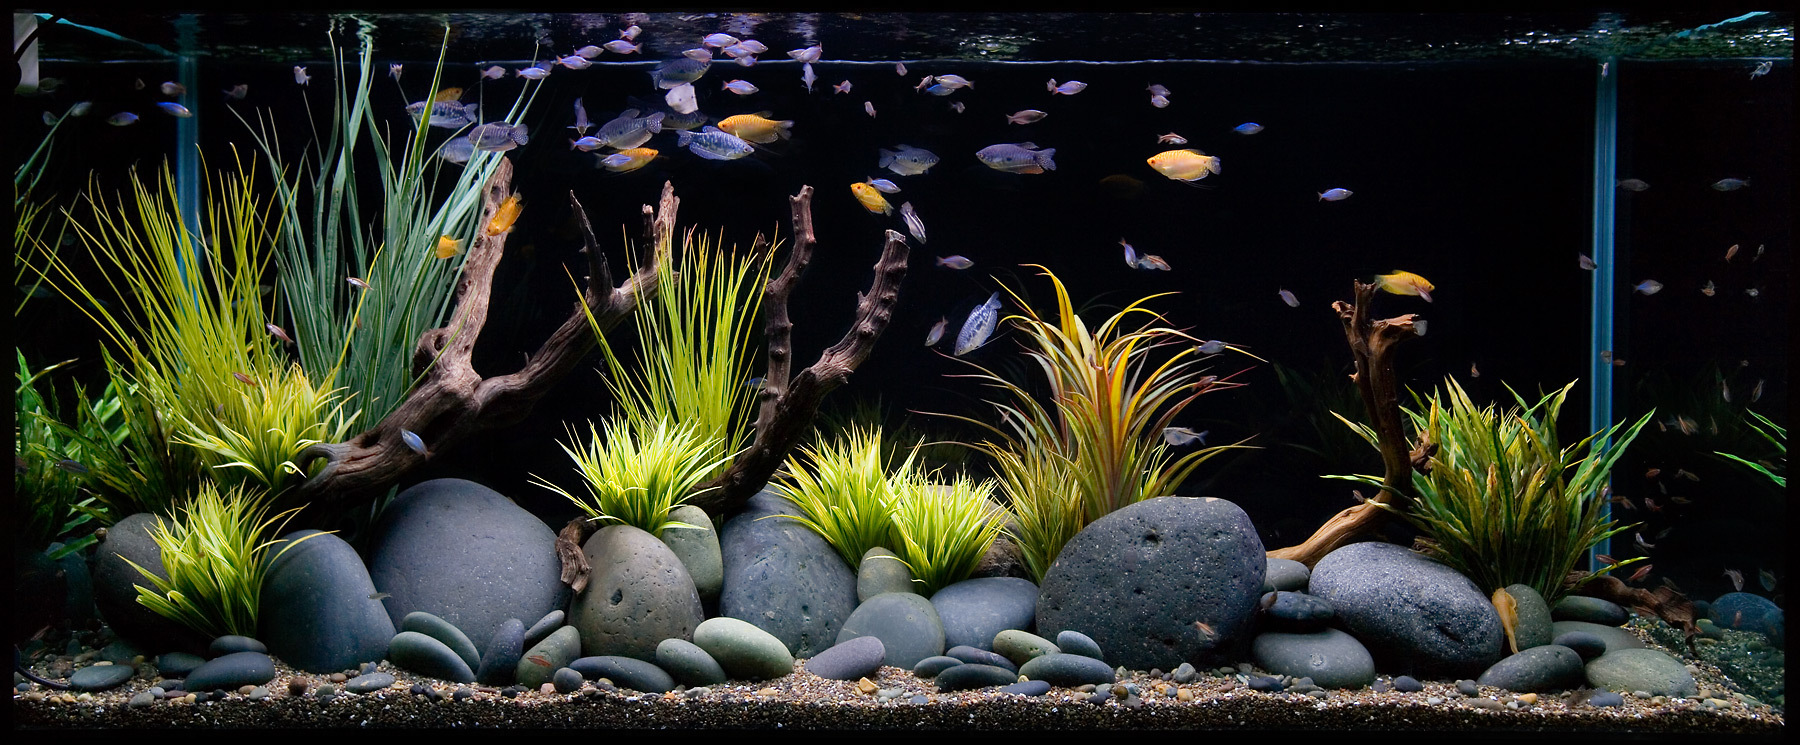 How to set up a fresh water aquarium wishforpets for Aquarium decoration ideas freshwater